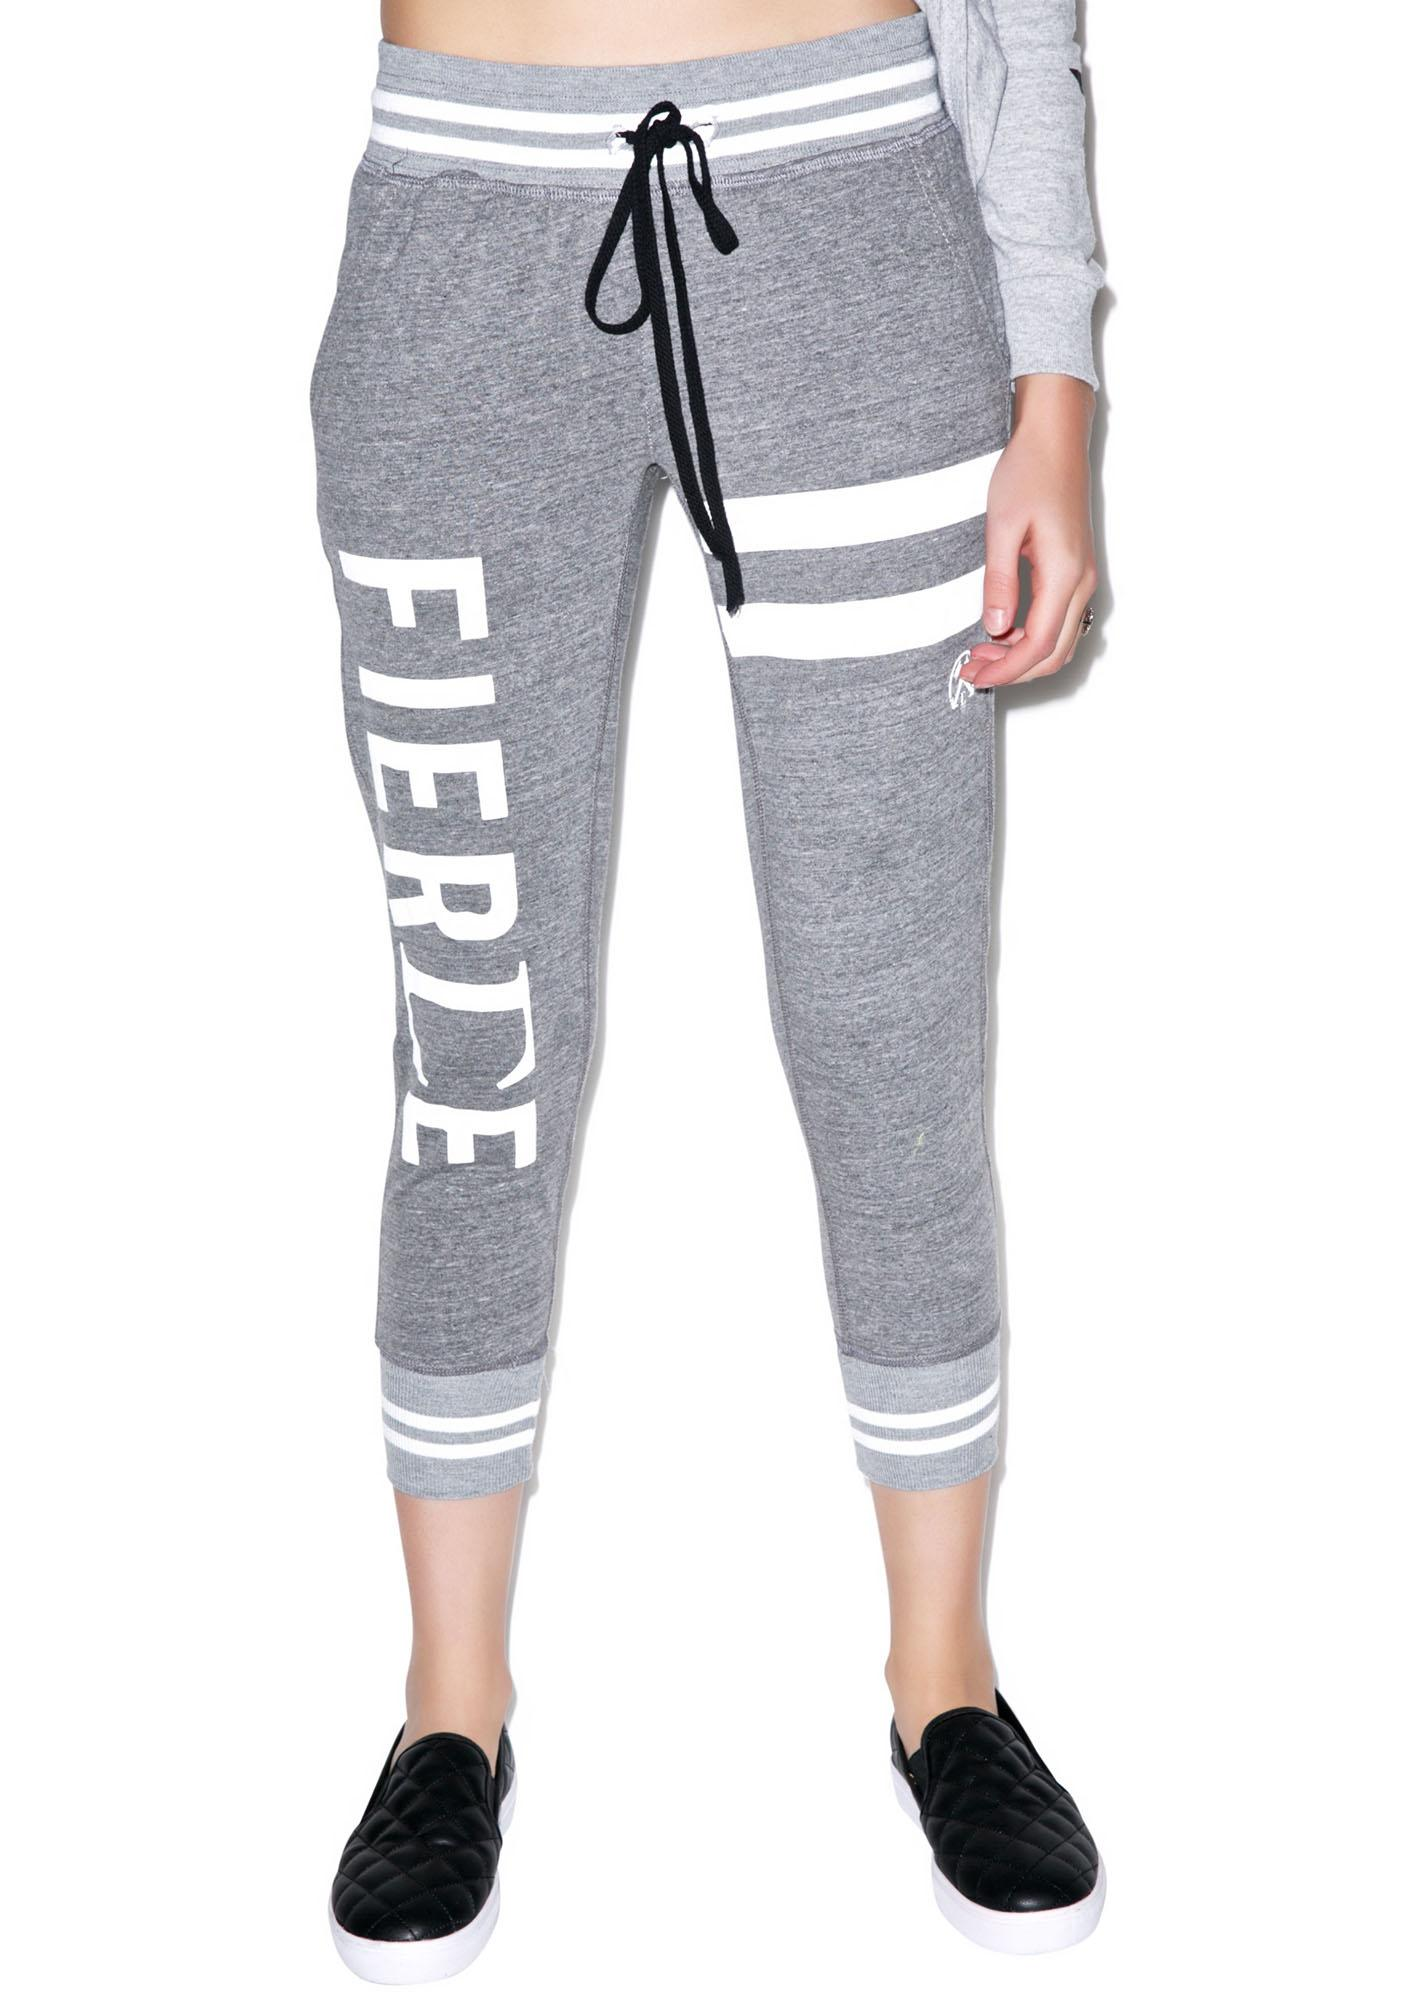 Civil Clothing Fierce Capri Runners